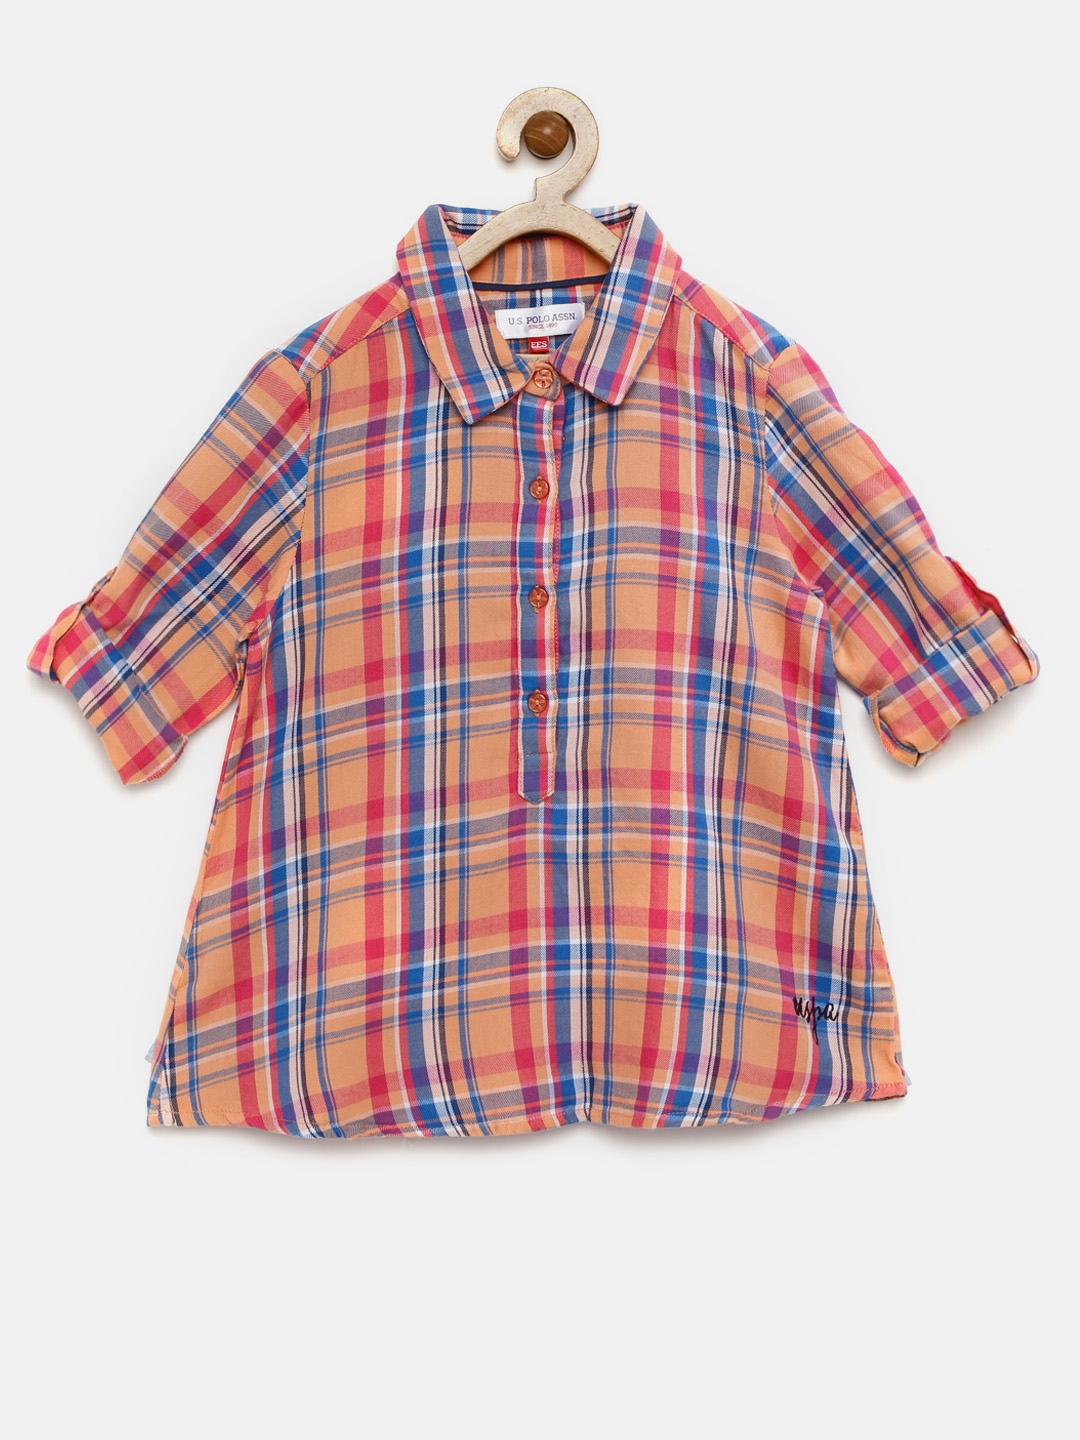 9d46ecad Buy U.S. Polo Assn. Kids Girls Pink & Blue Checked Shirt Style Top ...